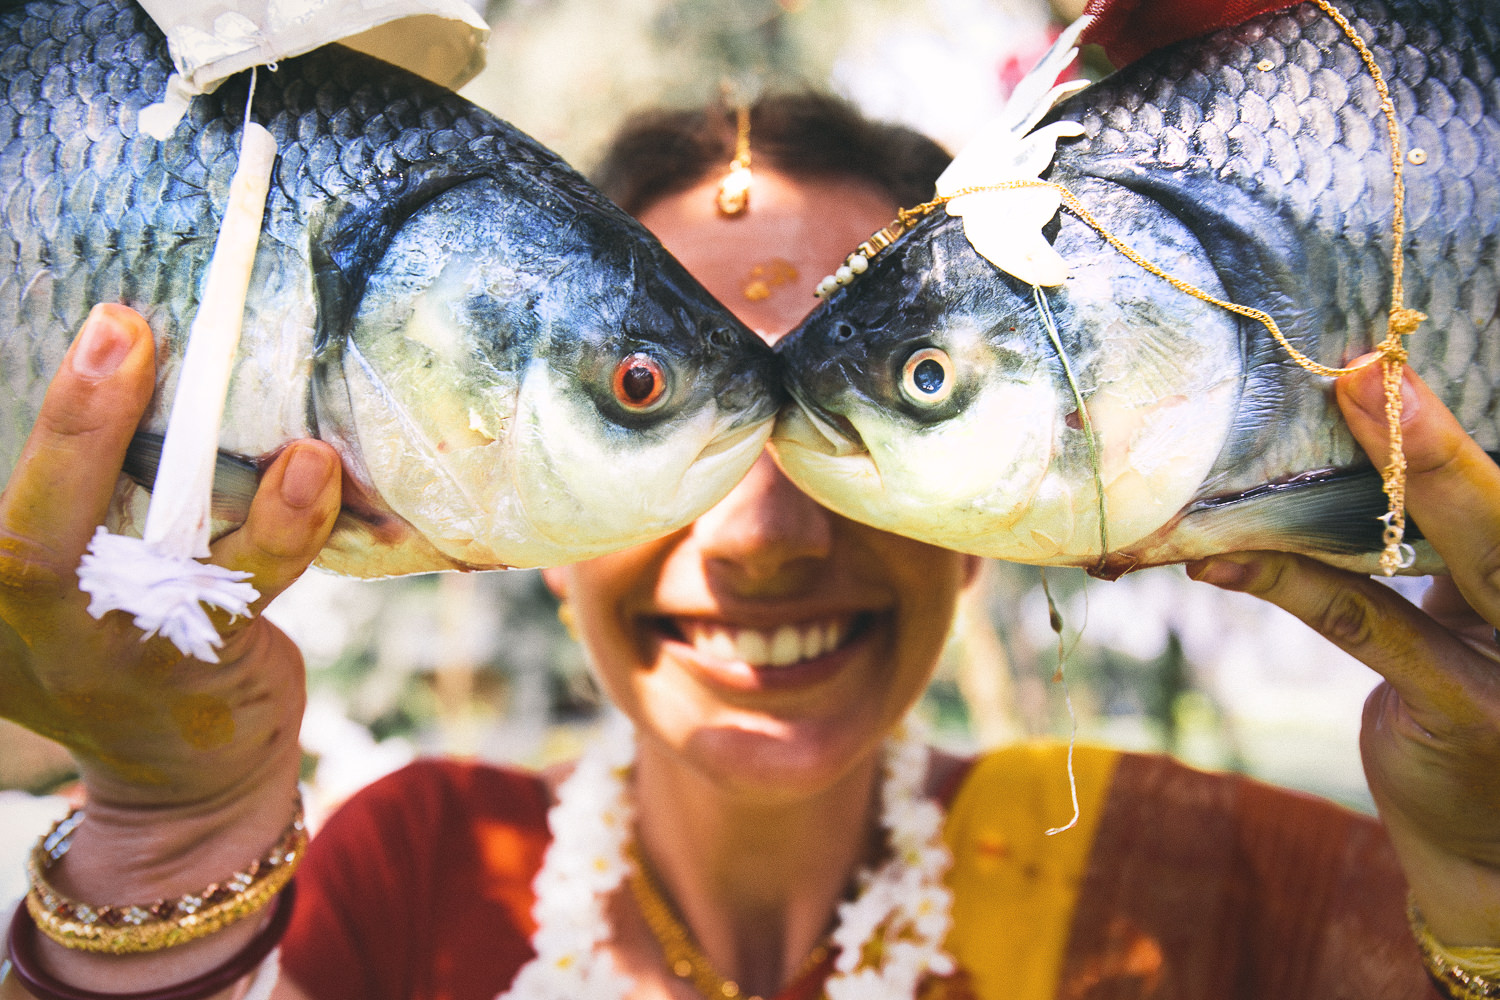 Bengali Wedding with fish - national geographic photo of the day